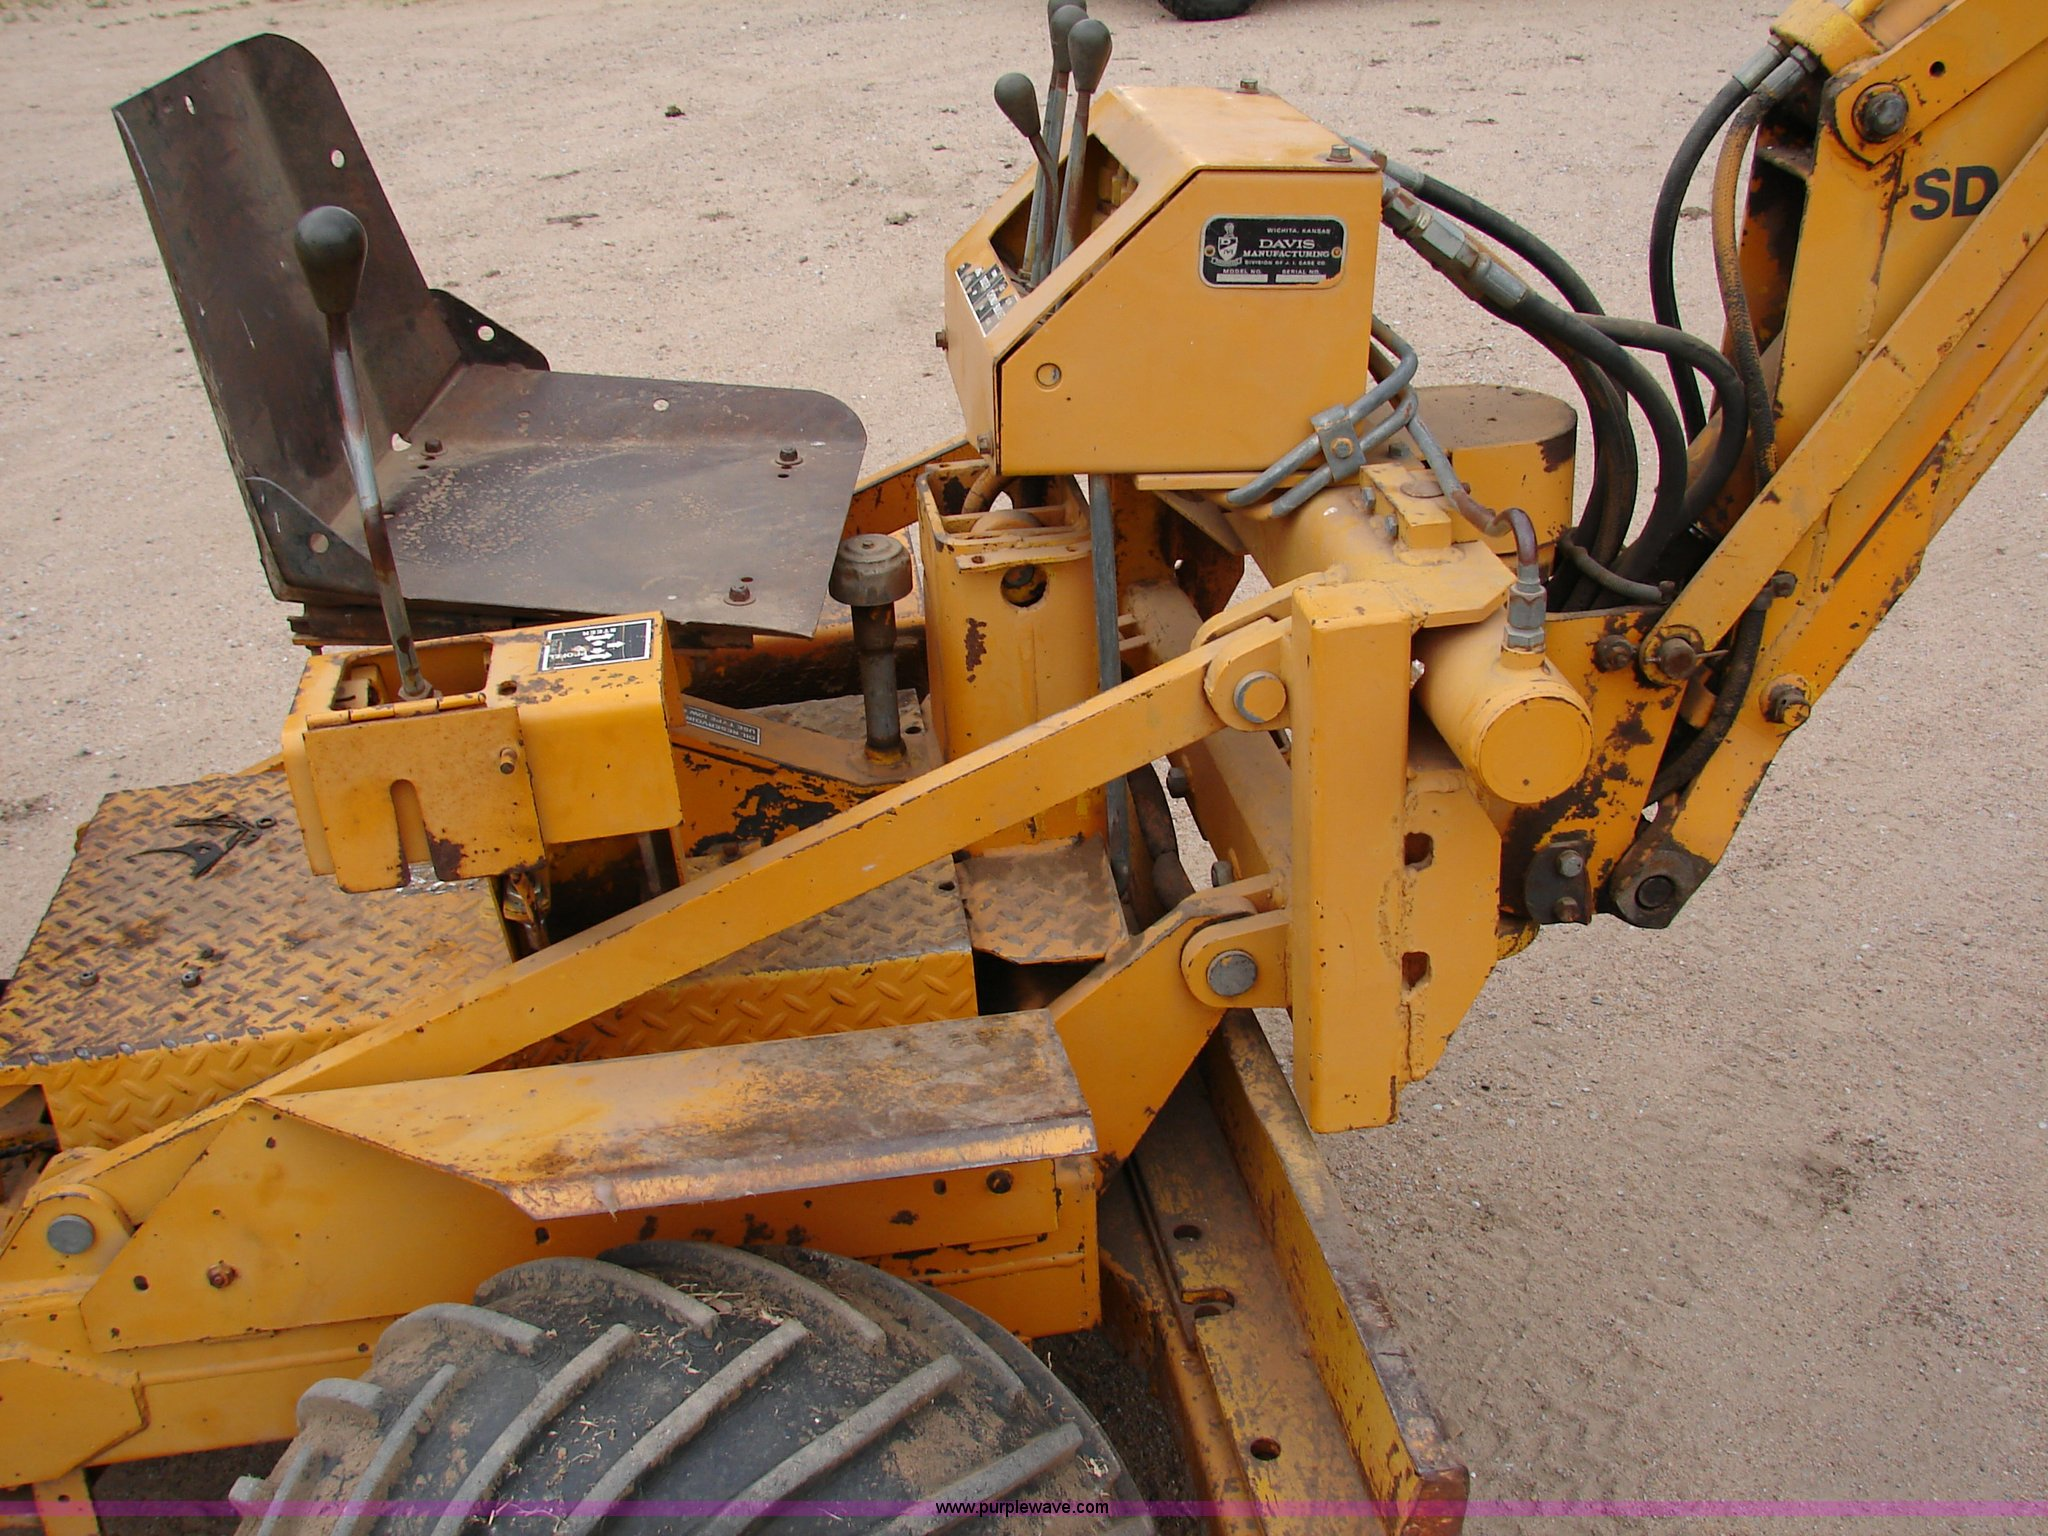 ... Case Davis 30+4 trencher and backhoe combo Full size in new window ...